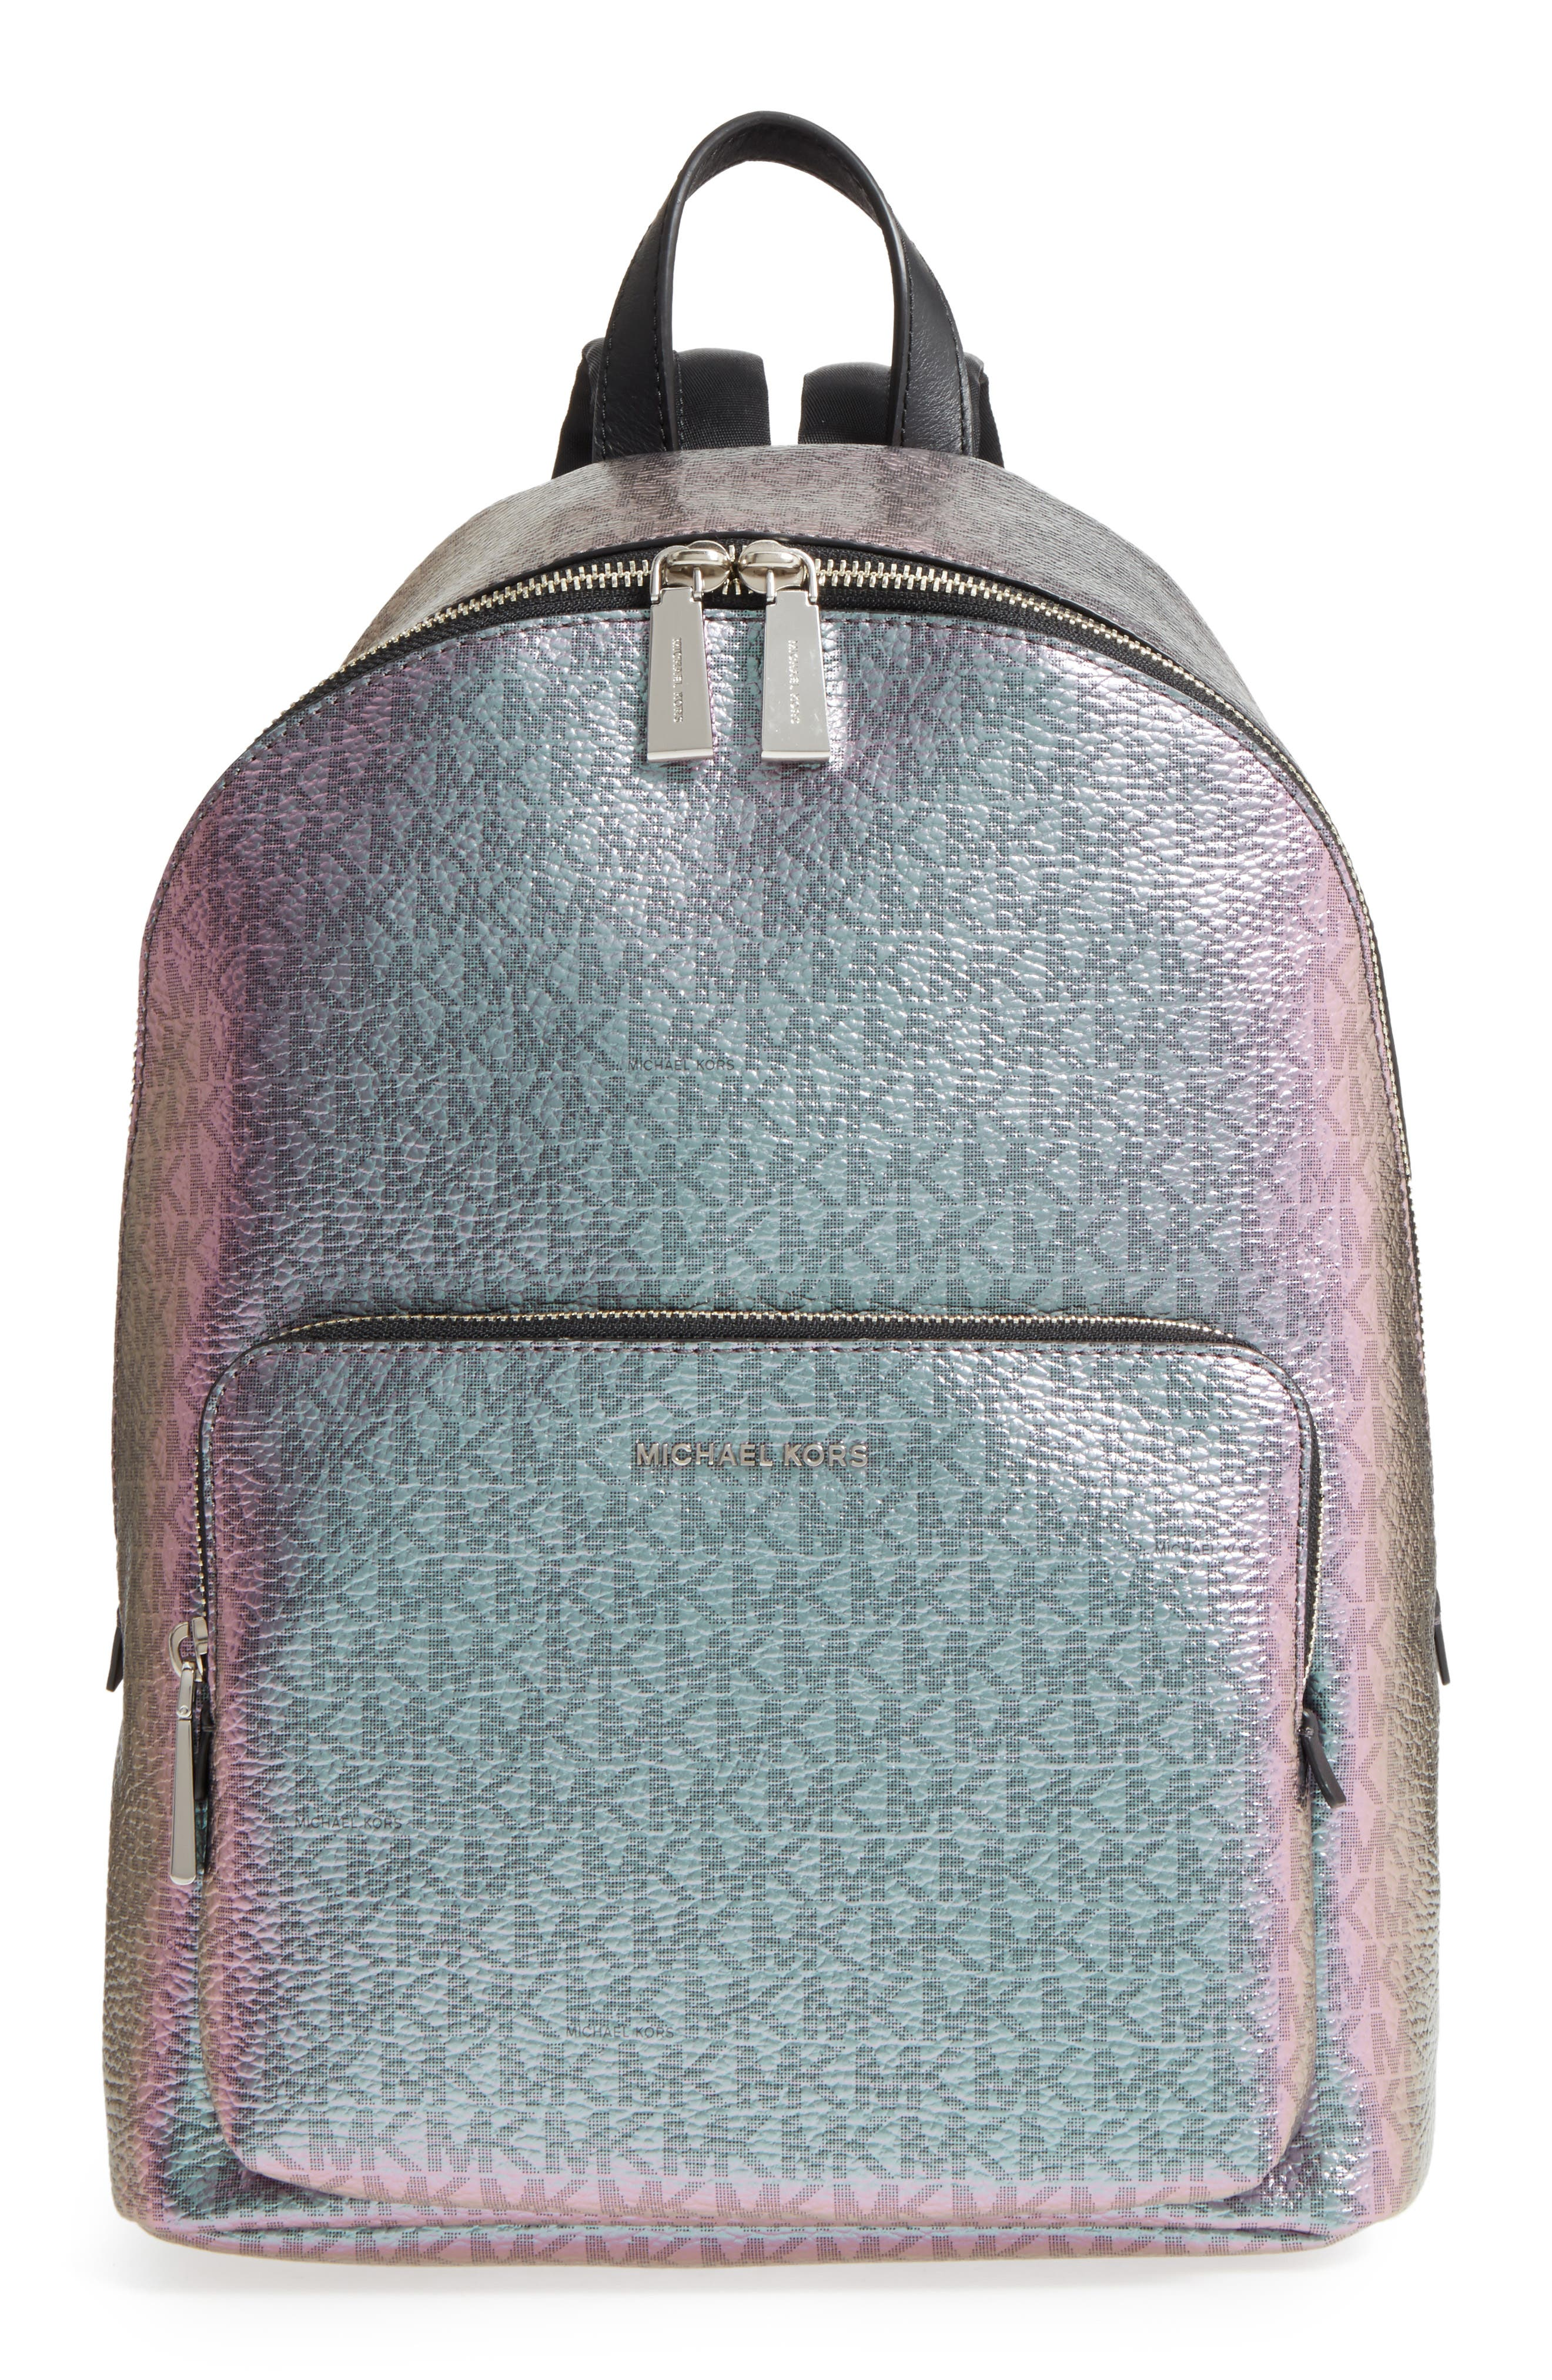 MICHAEL Michael Kors Wythe Large Faux Leather Backpack,                             Main thumbnail 1, color,                             Pale Blue/ Nickel